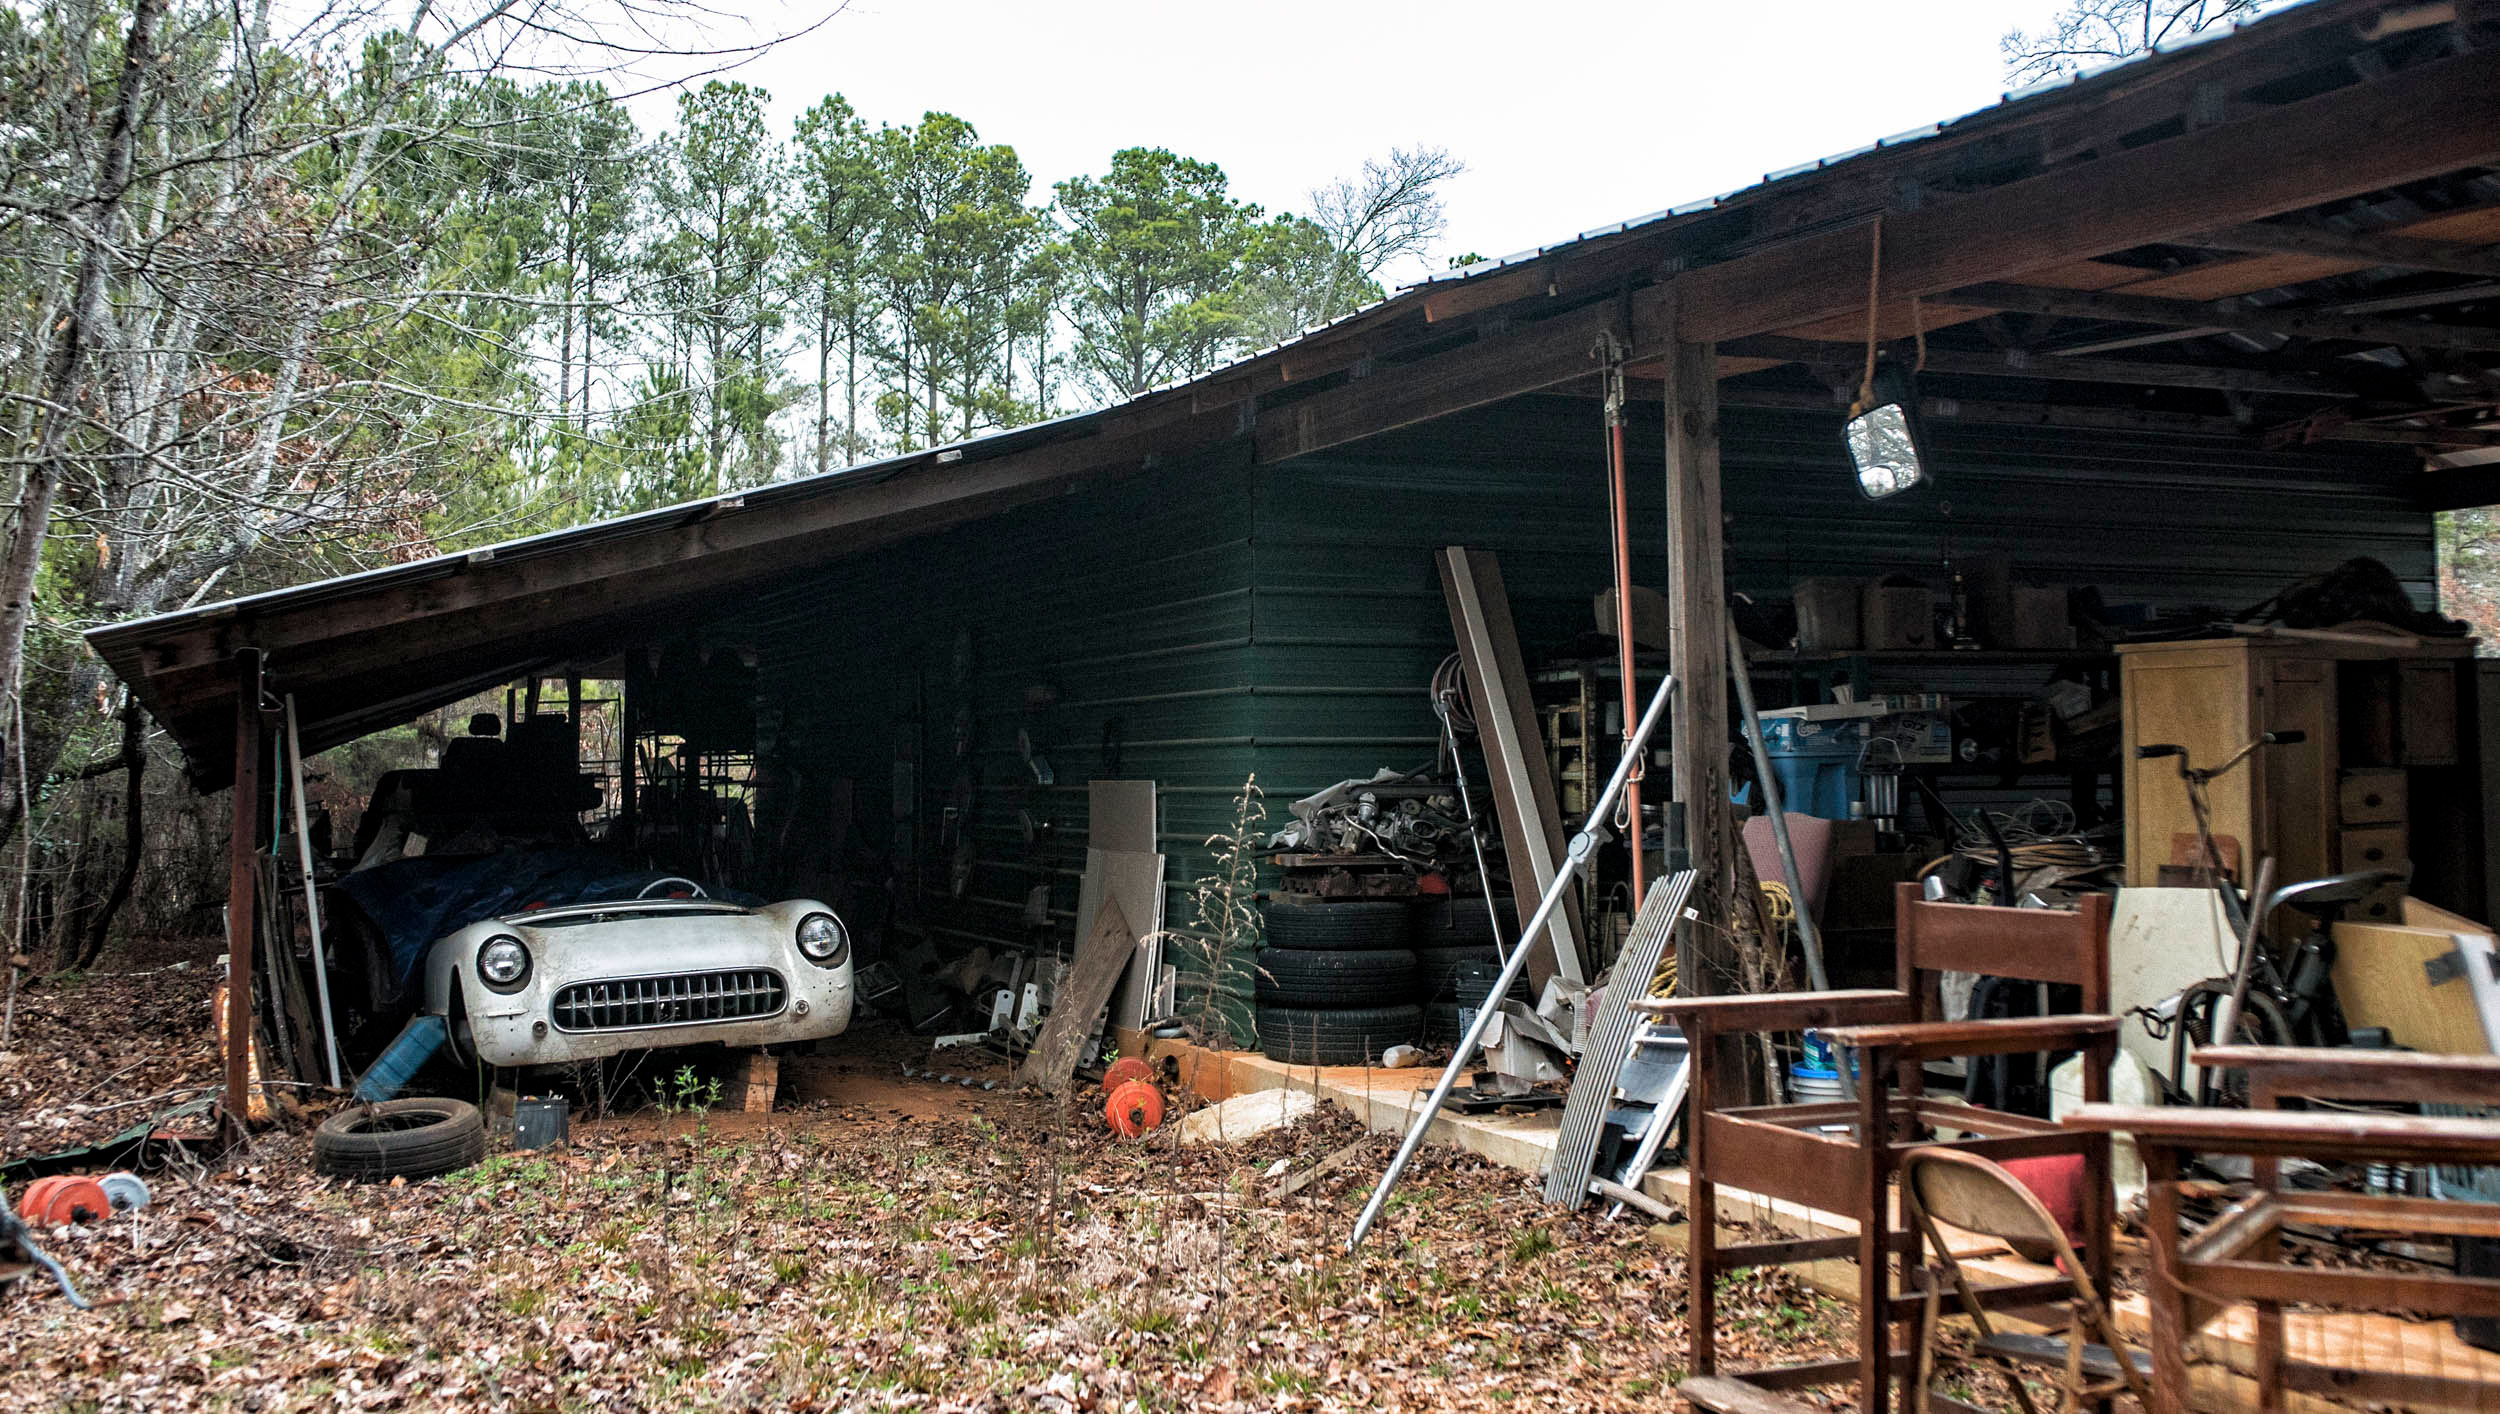 Barn find hunting turns up gems, but also rust, rats, and shattered dreams